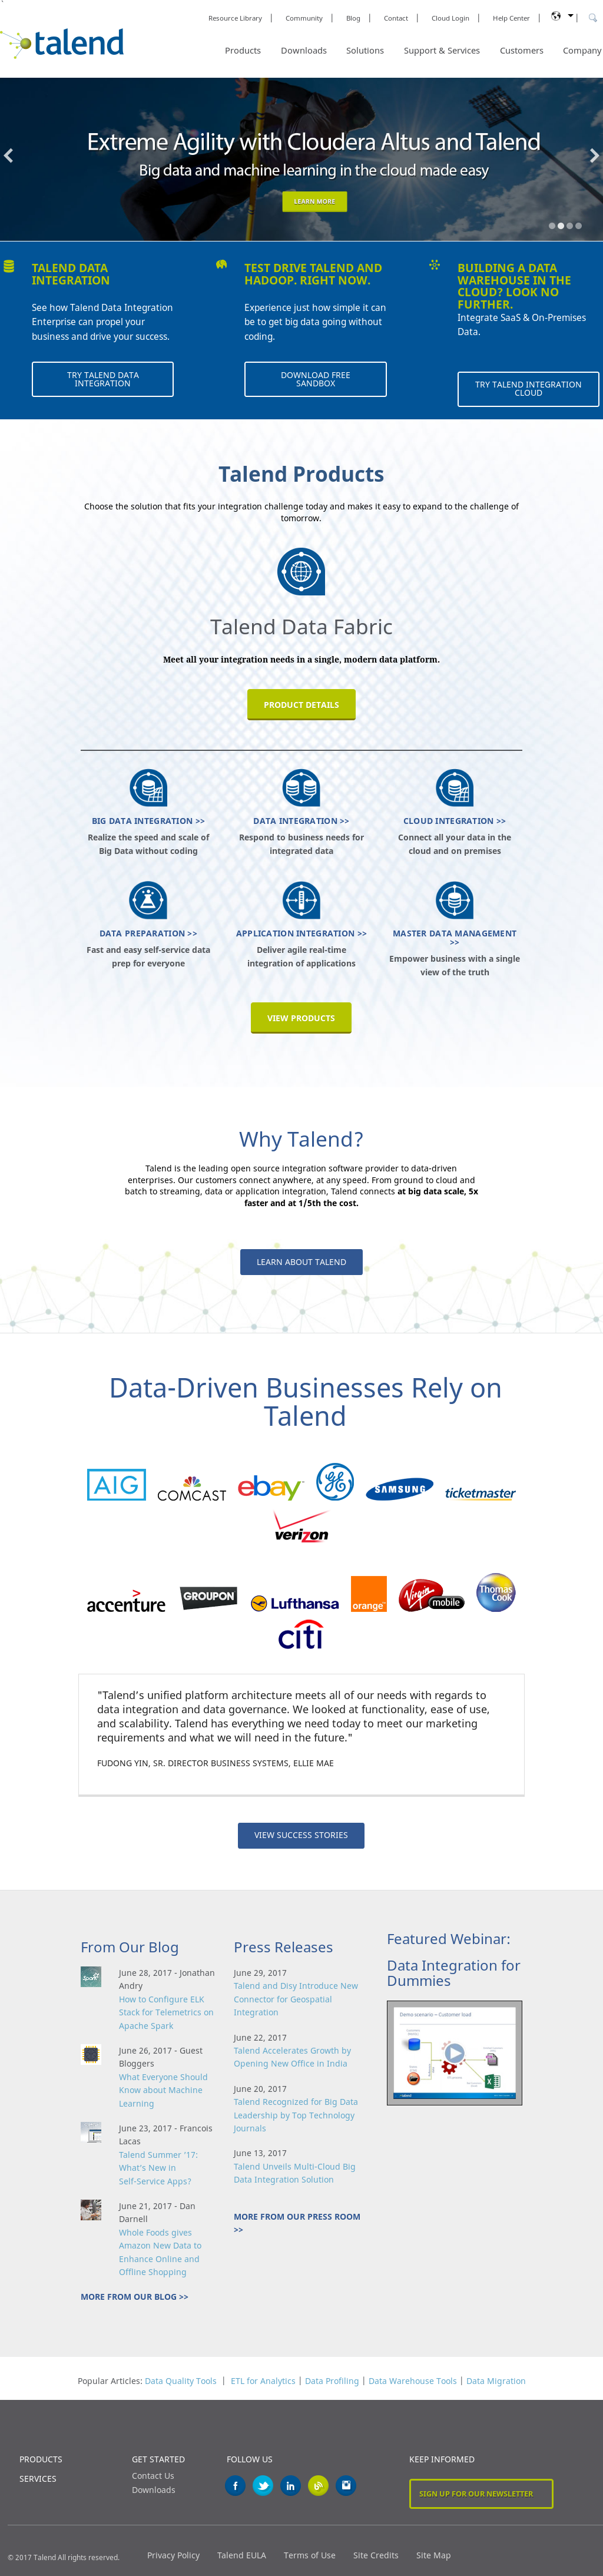 Talend Competitors, Revenue and Employees - Owler Company